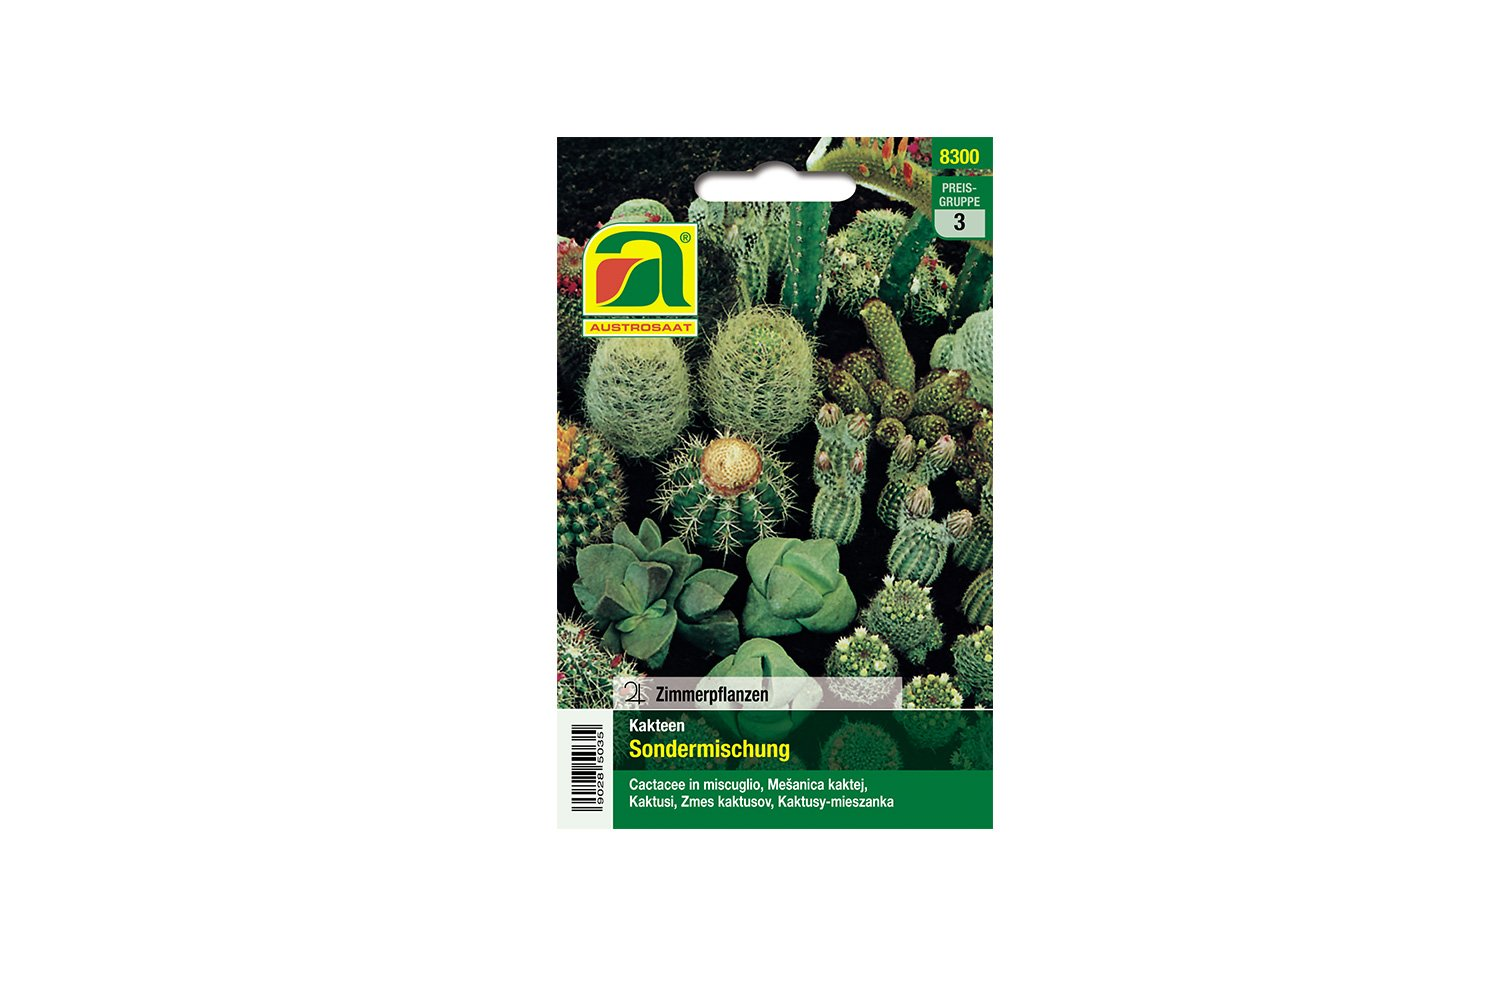 Cacti Special Mixture | This Pack Brings Incredible 50 Plants | Houseplants | for Plant Lovers Austrosaat